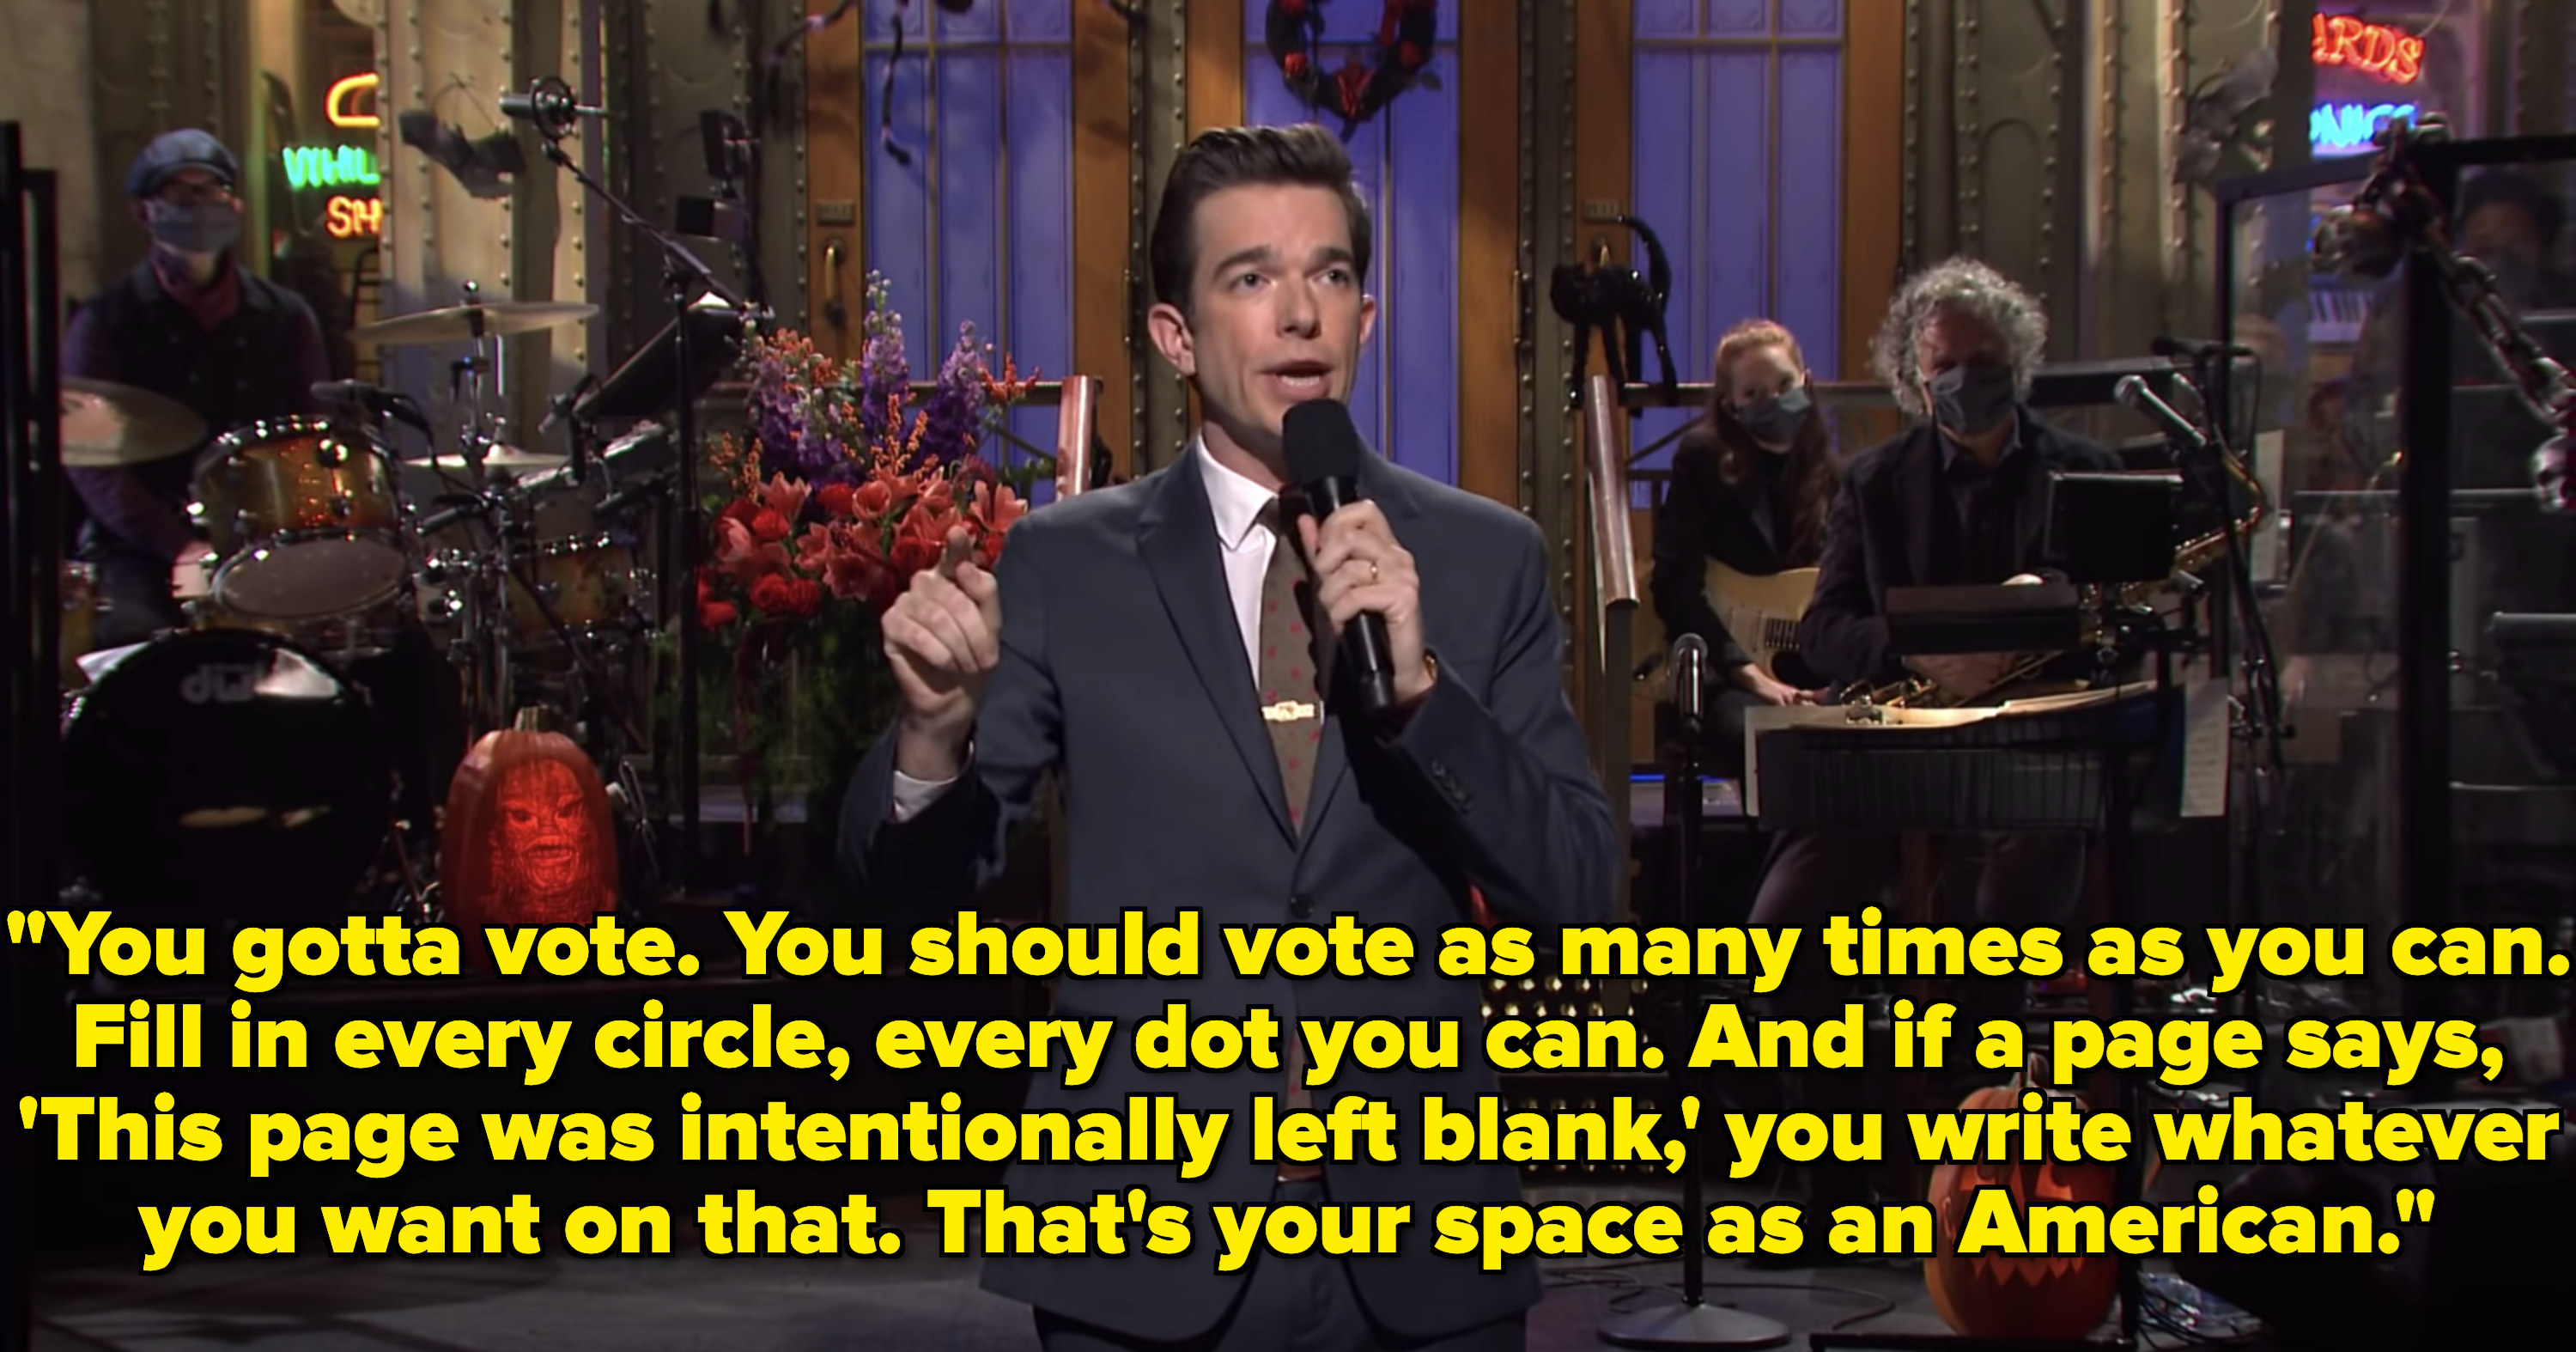 """You gotta vote. You should vote as many times as you can. Fill in every circle, every dot you can. And if a page says, 'This page was intentionally left blank,' you write whatever you want on that. That's your space as an American."""